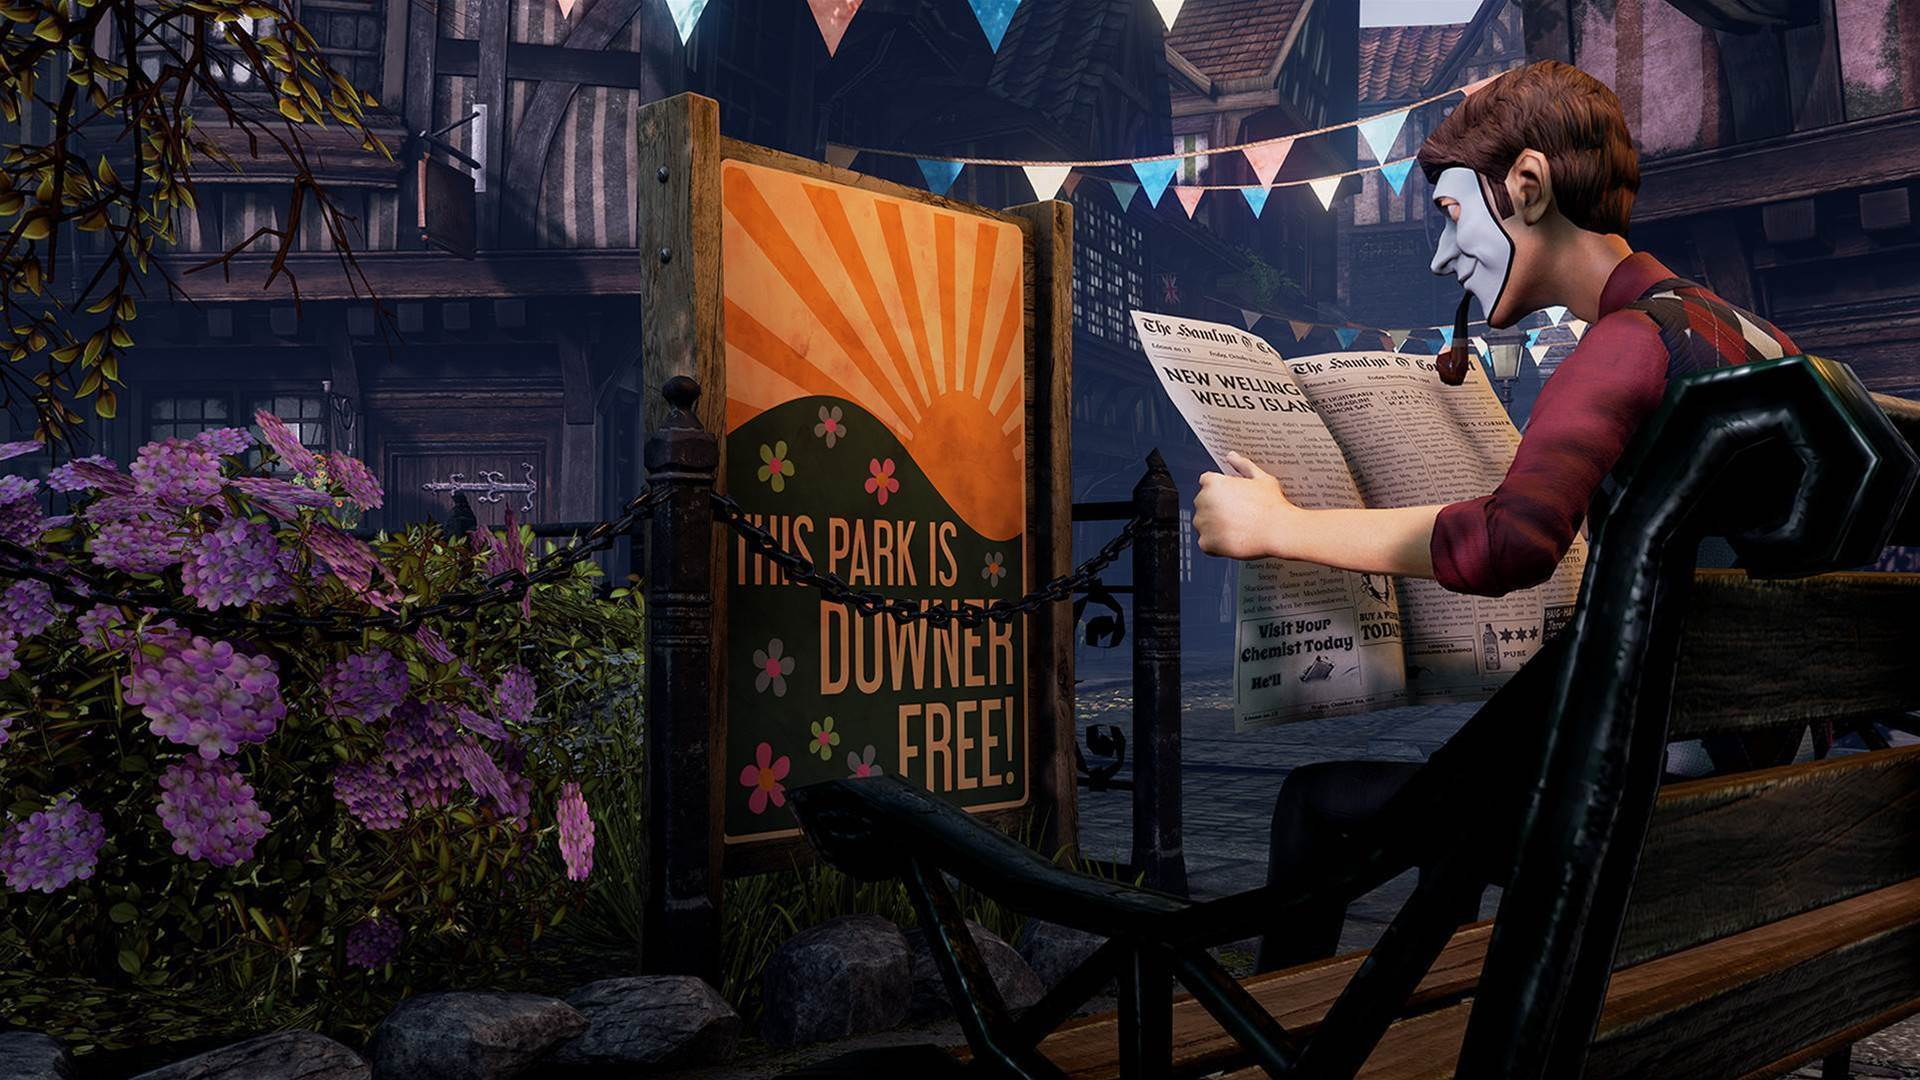 We Happy Few gets re-classified with an R18+ rating